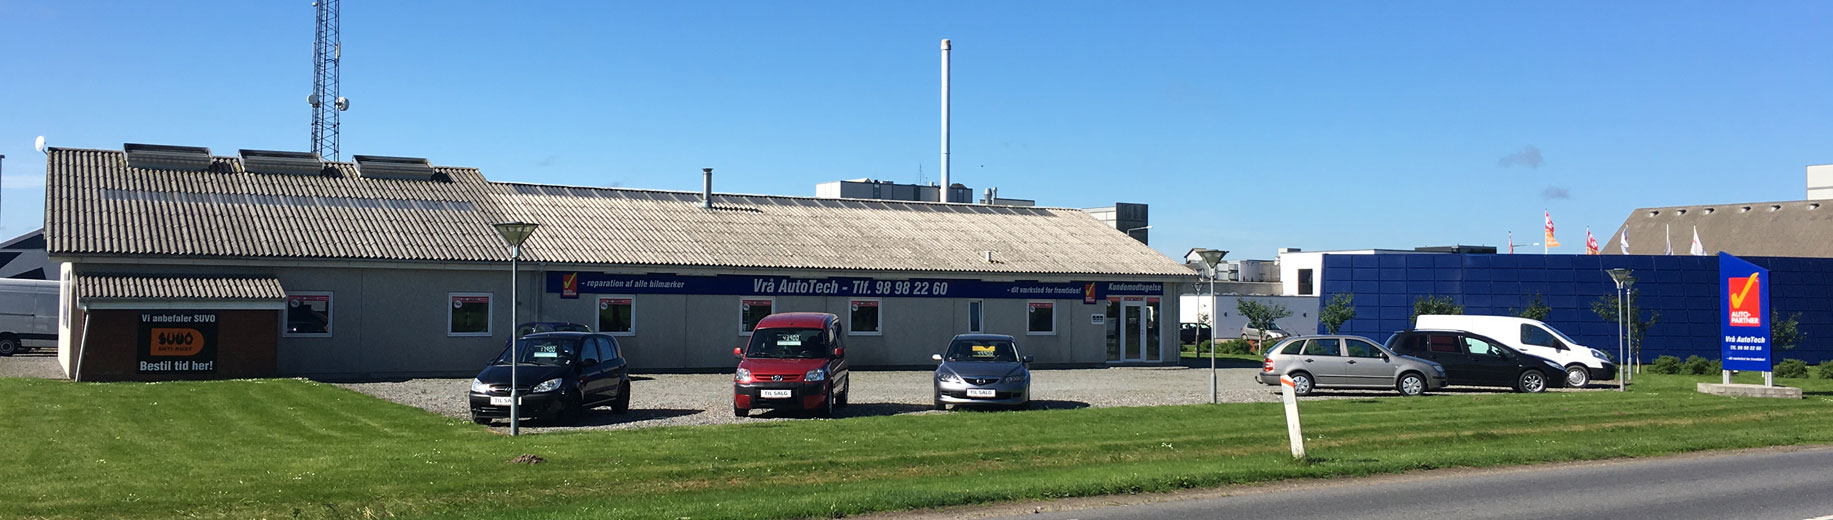 vraa-autotech-vaerksted-reparation-service-nordjylland-5